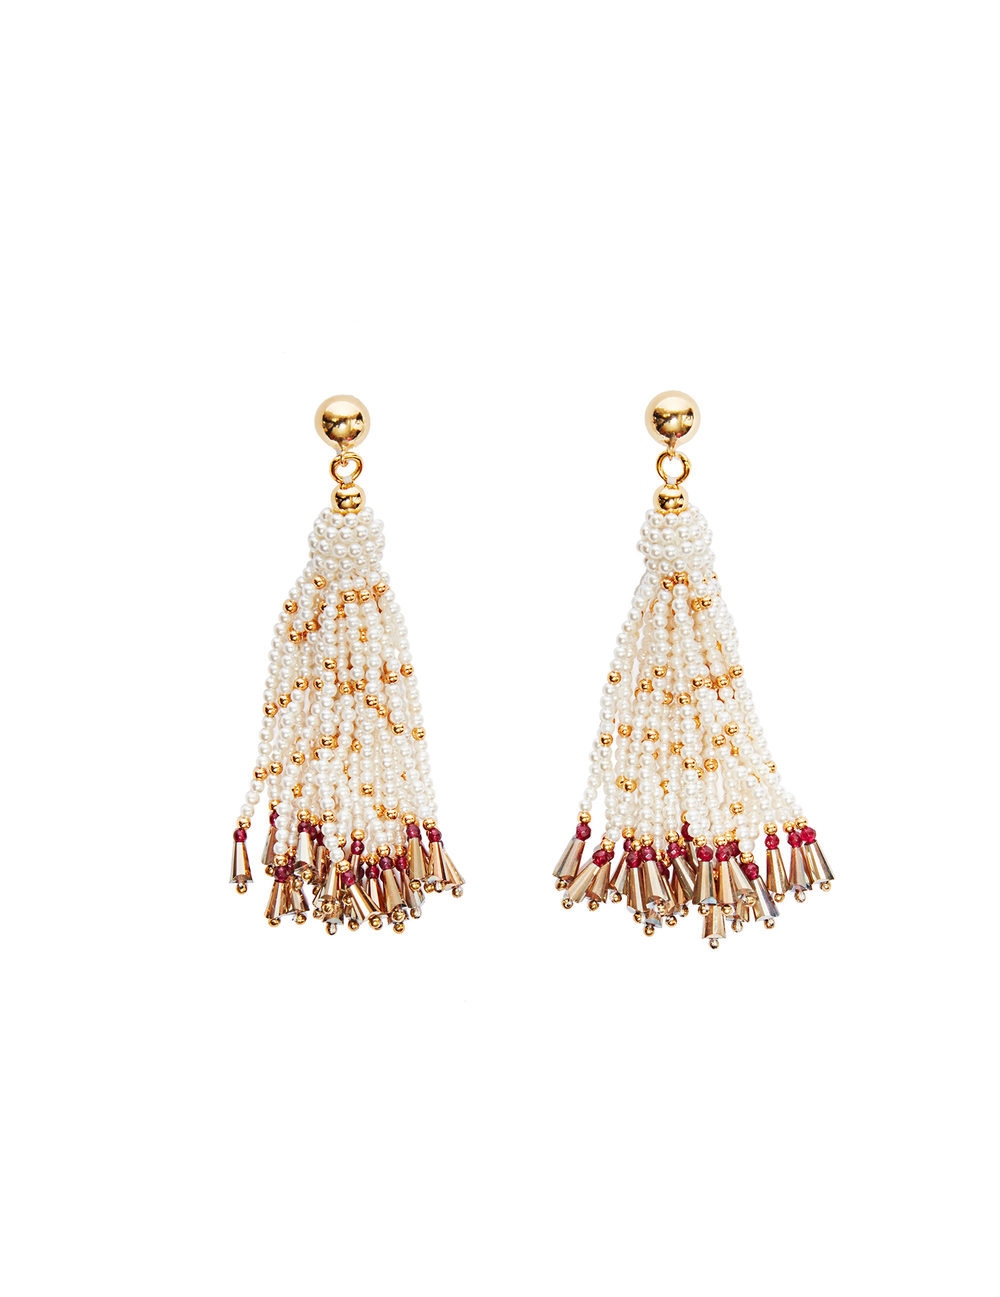 Avenn fringe earrings (stud)